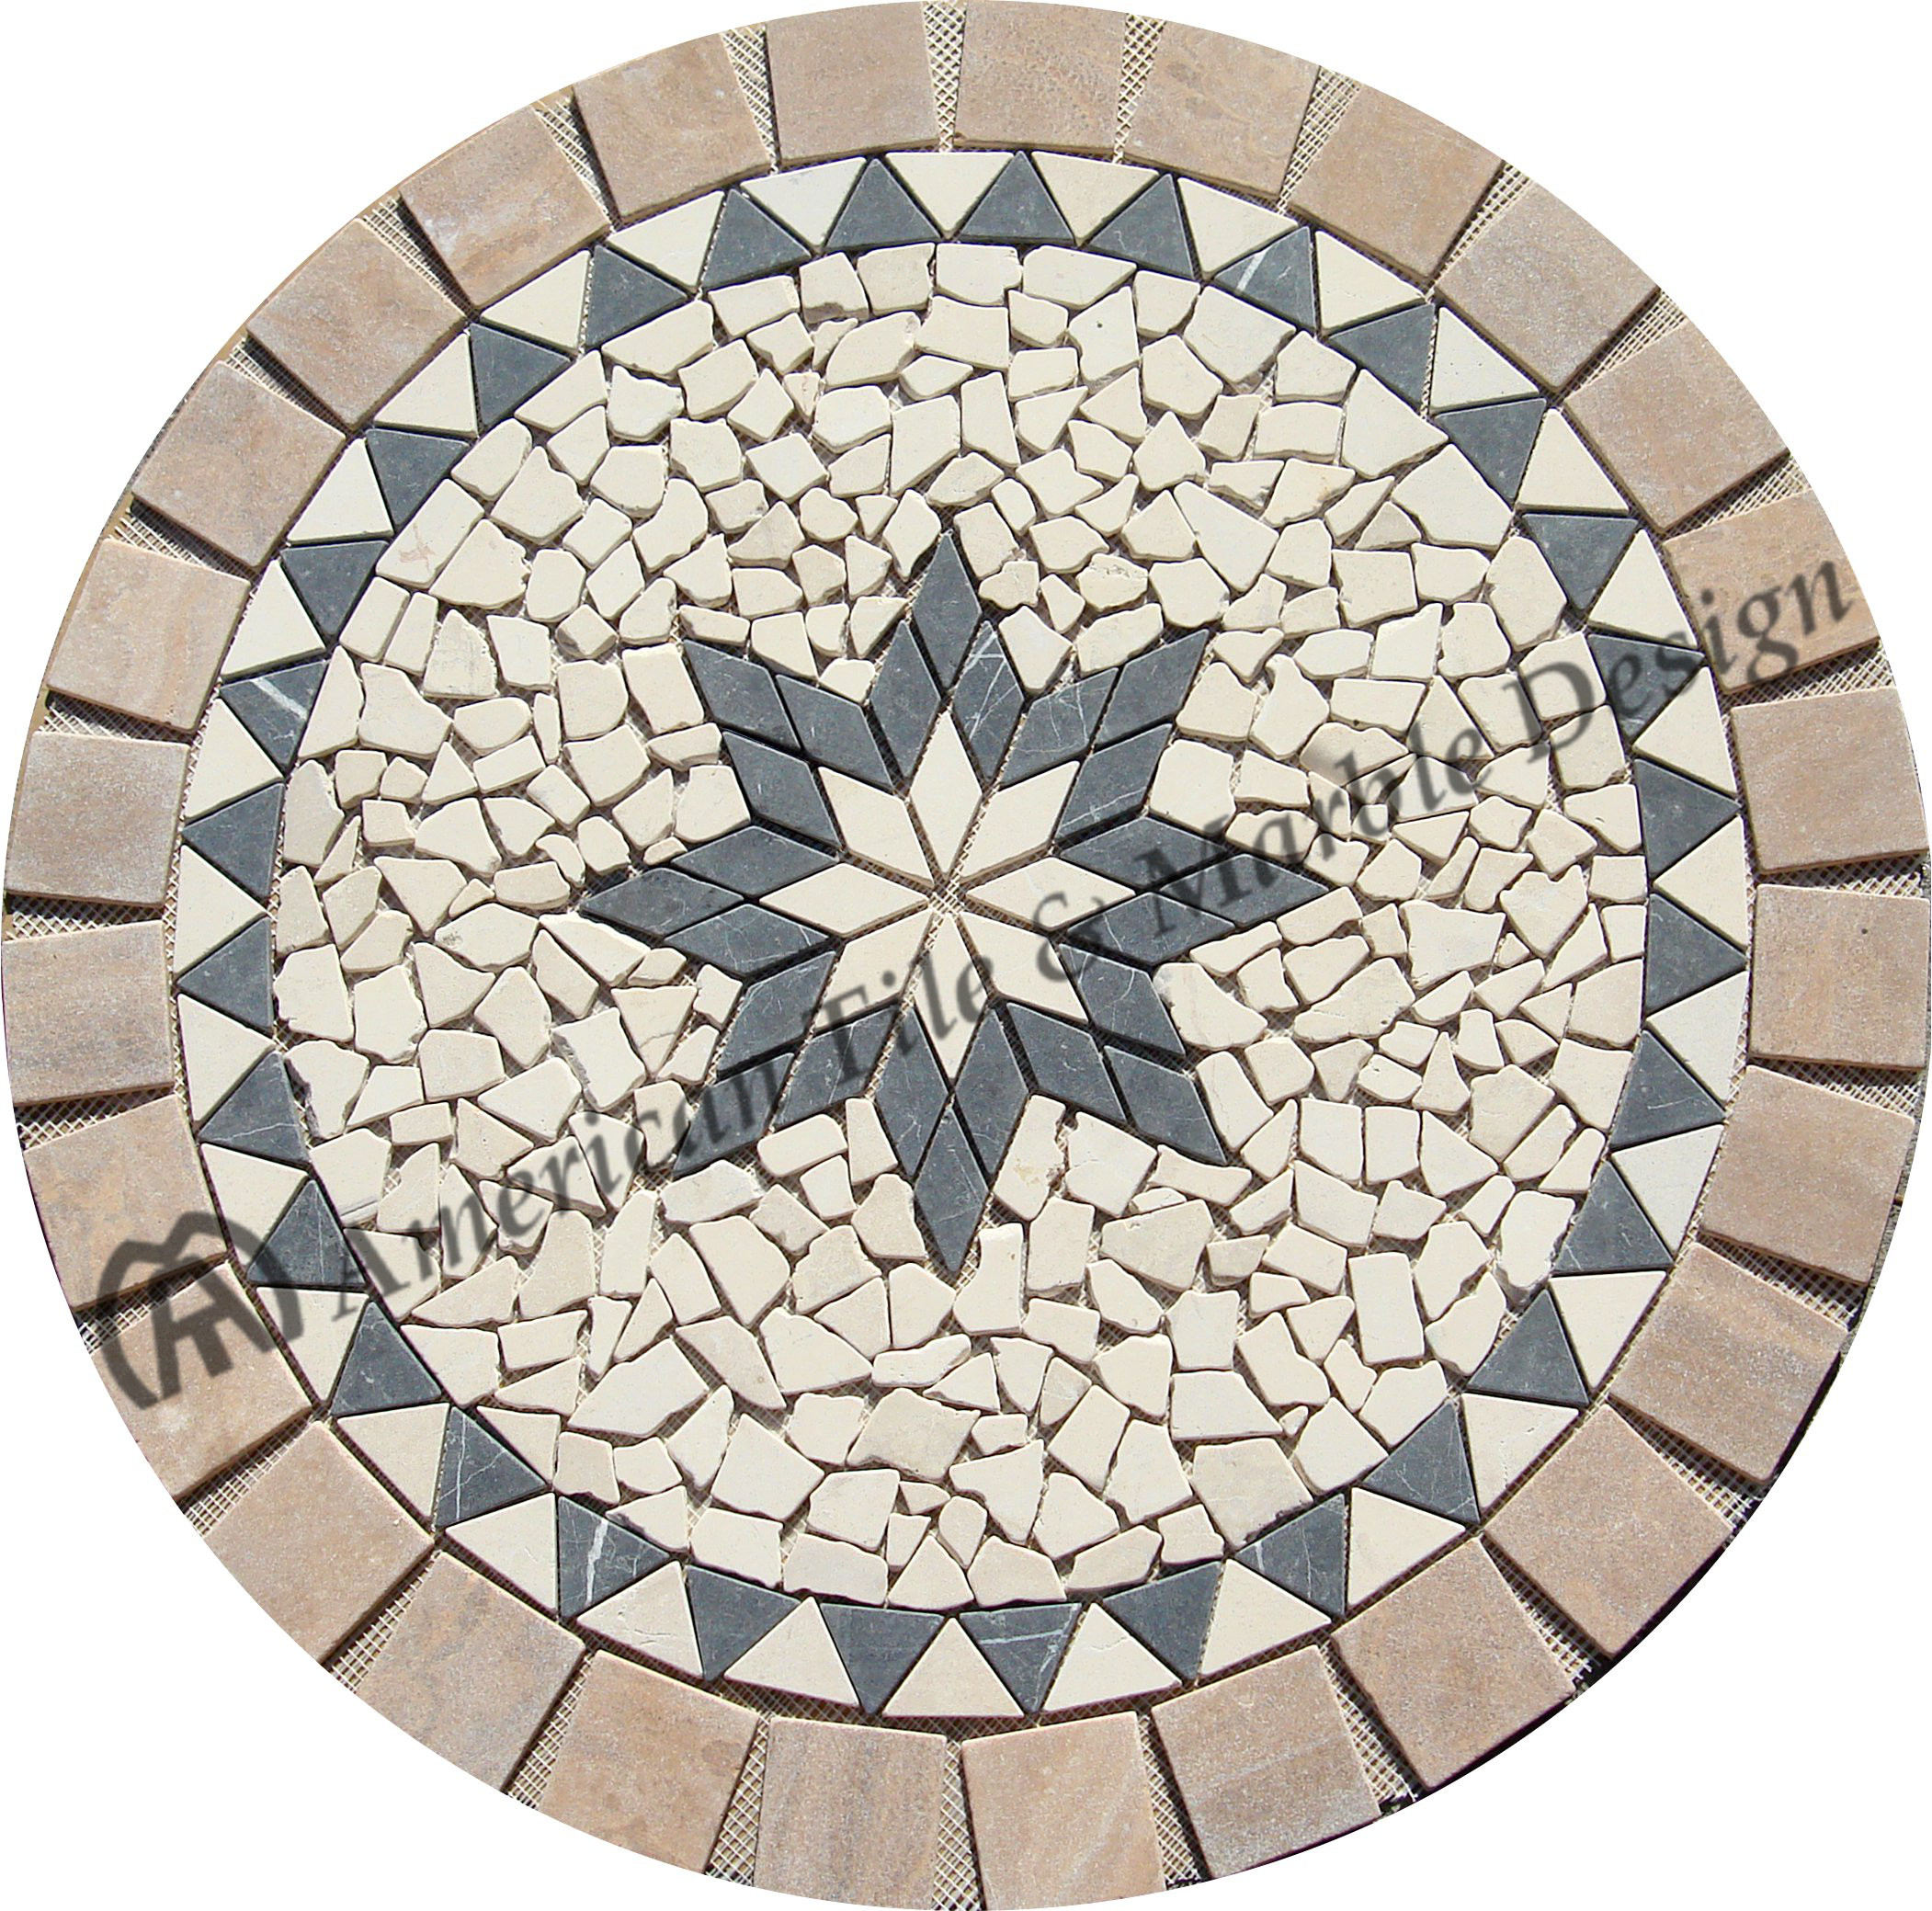 Mr 741 American Tile And Marble Design